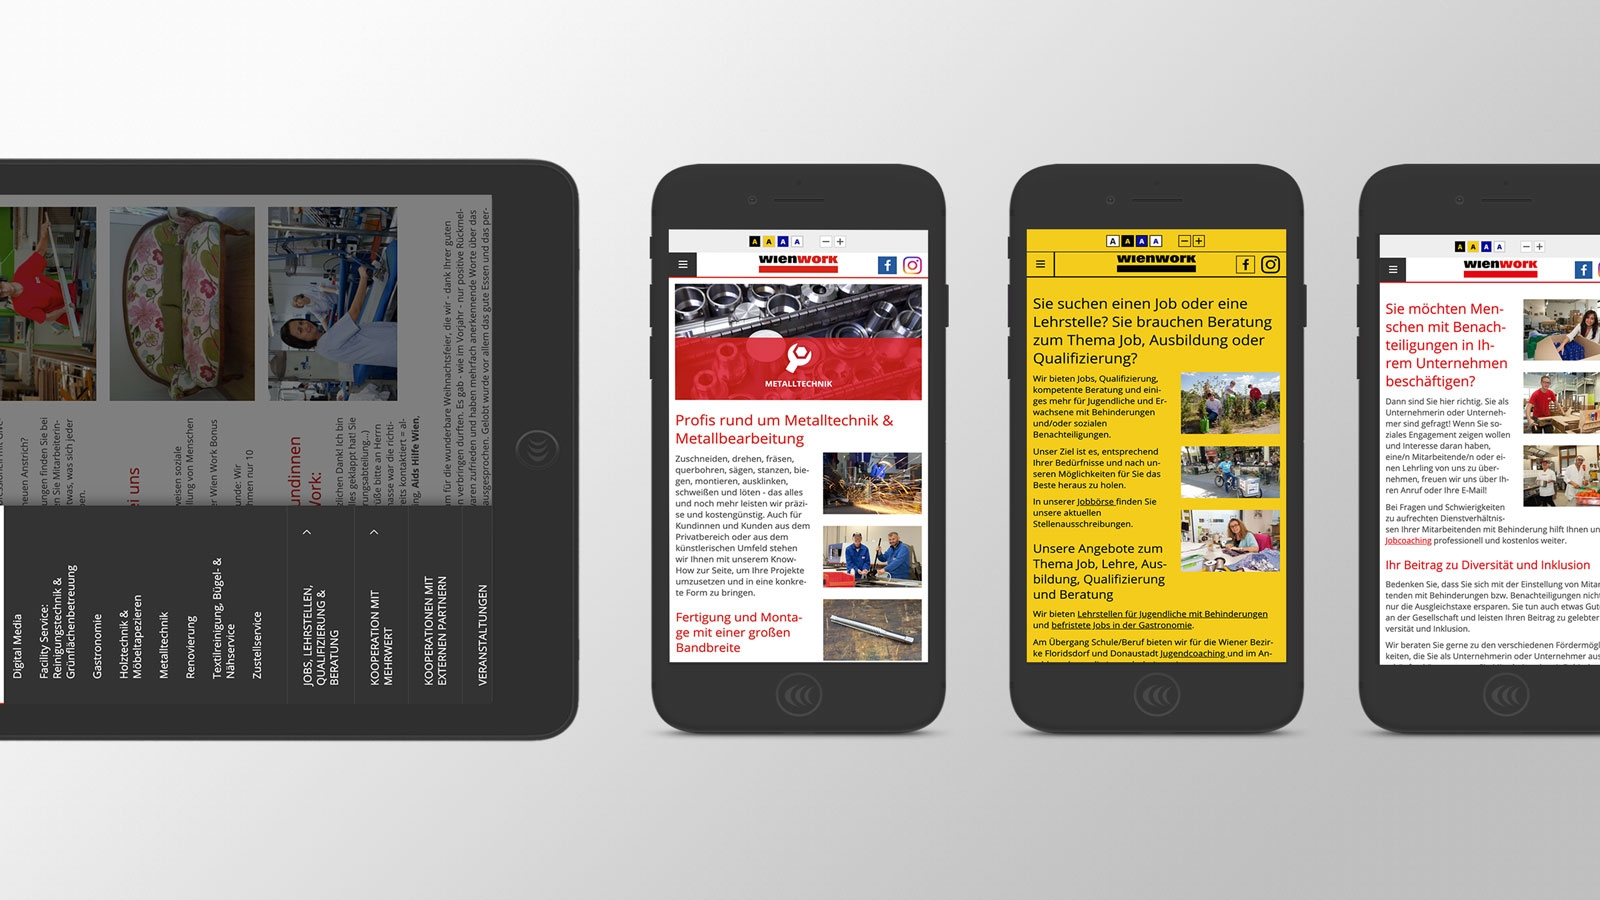 Wien Work | wienwork.at | 2016 (Responsive Tablet Phones) © echonet communication